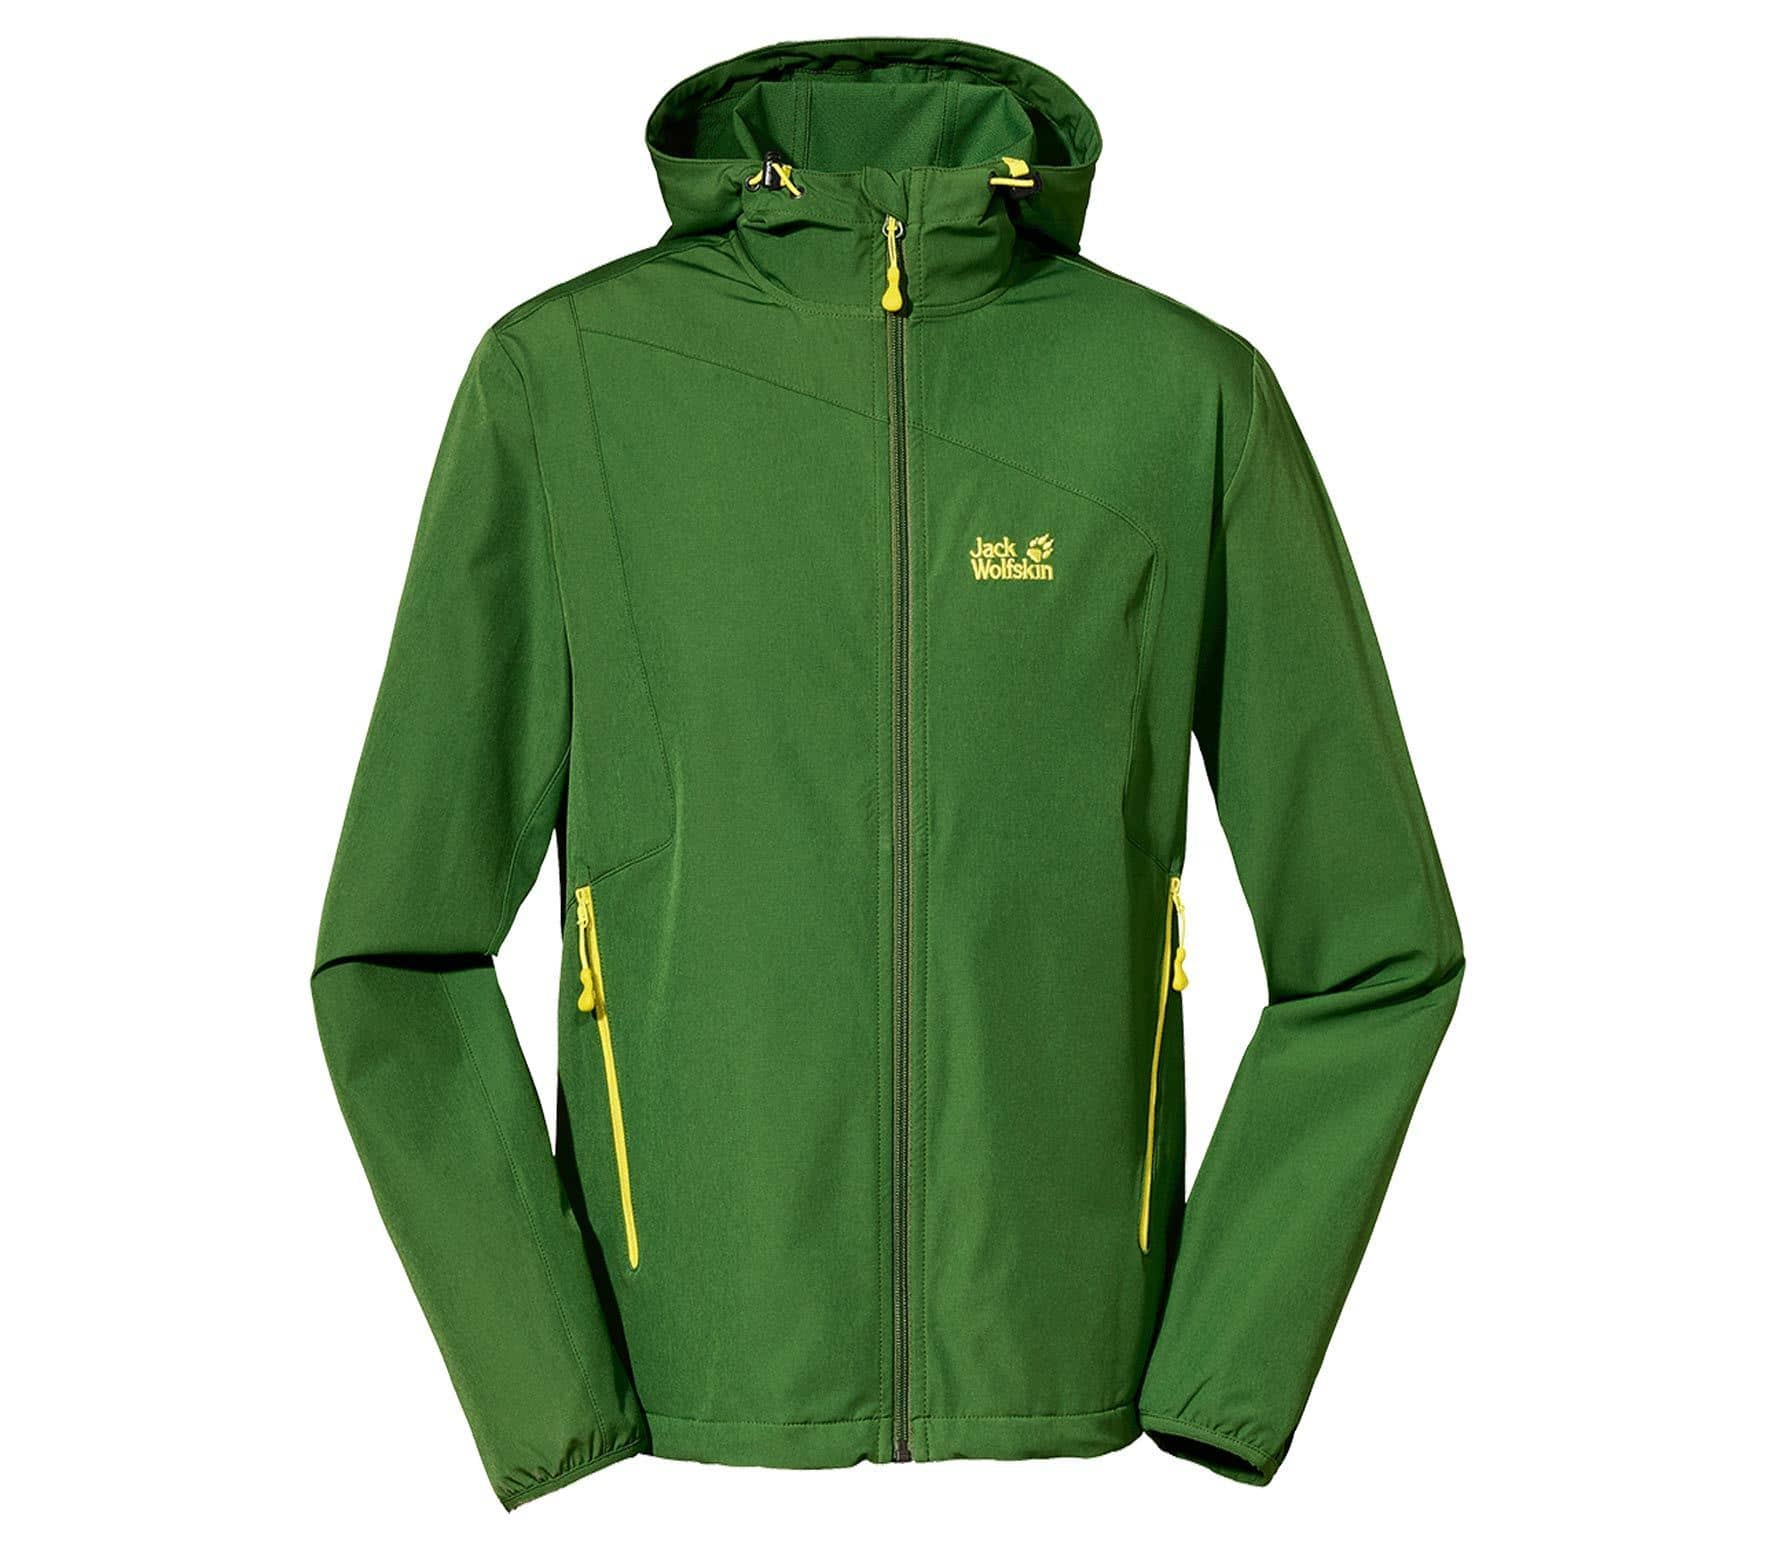 cheap for discount 65fdc 90d8c Jack wolfskin Turbulence Uomo Giacca Softshell Men